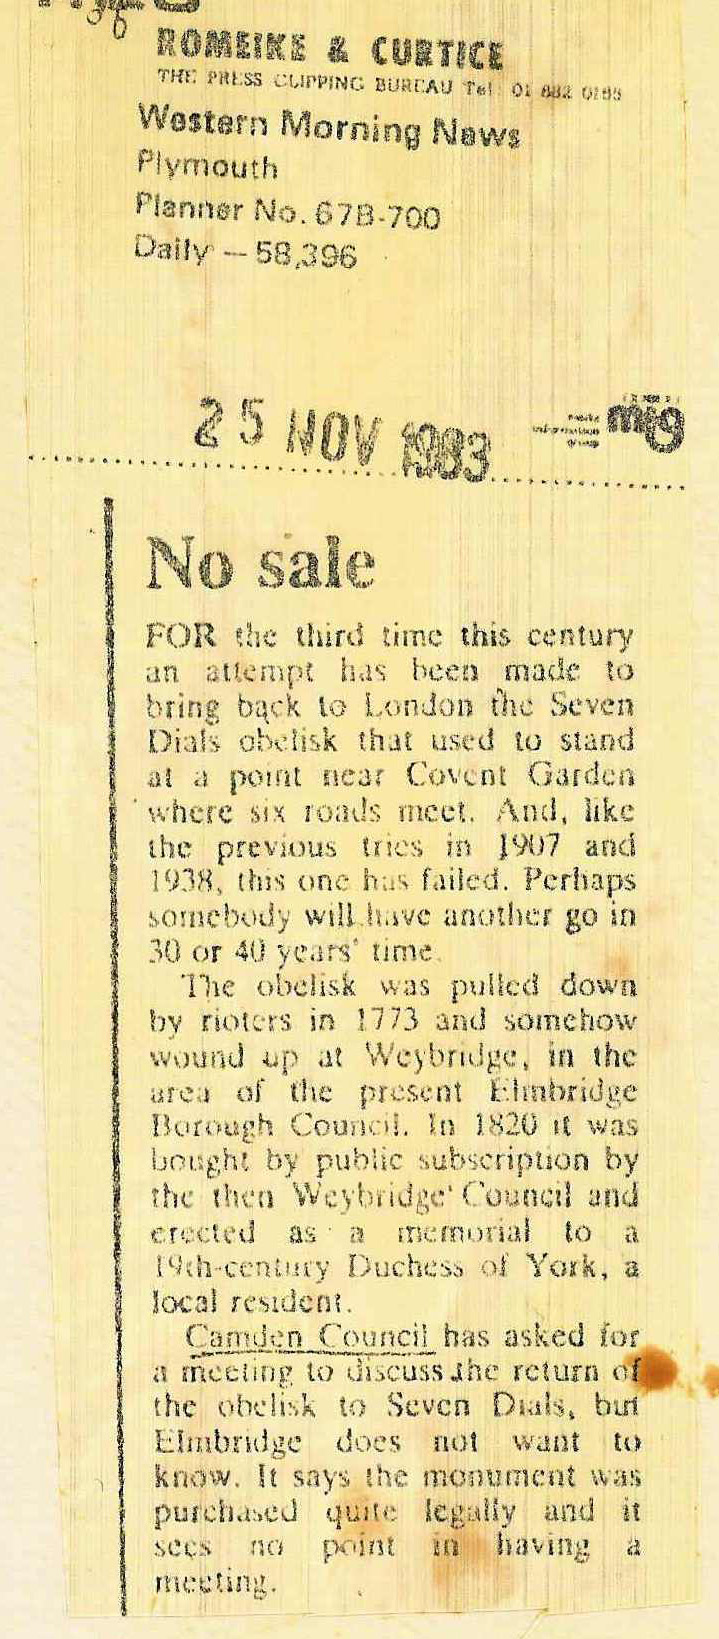 25 Nov. 1983 � Western Morning News: No Sale re Weybridge.